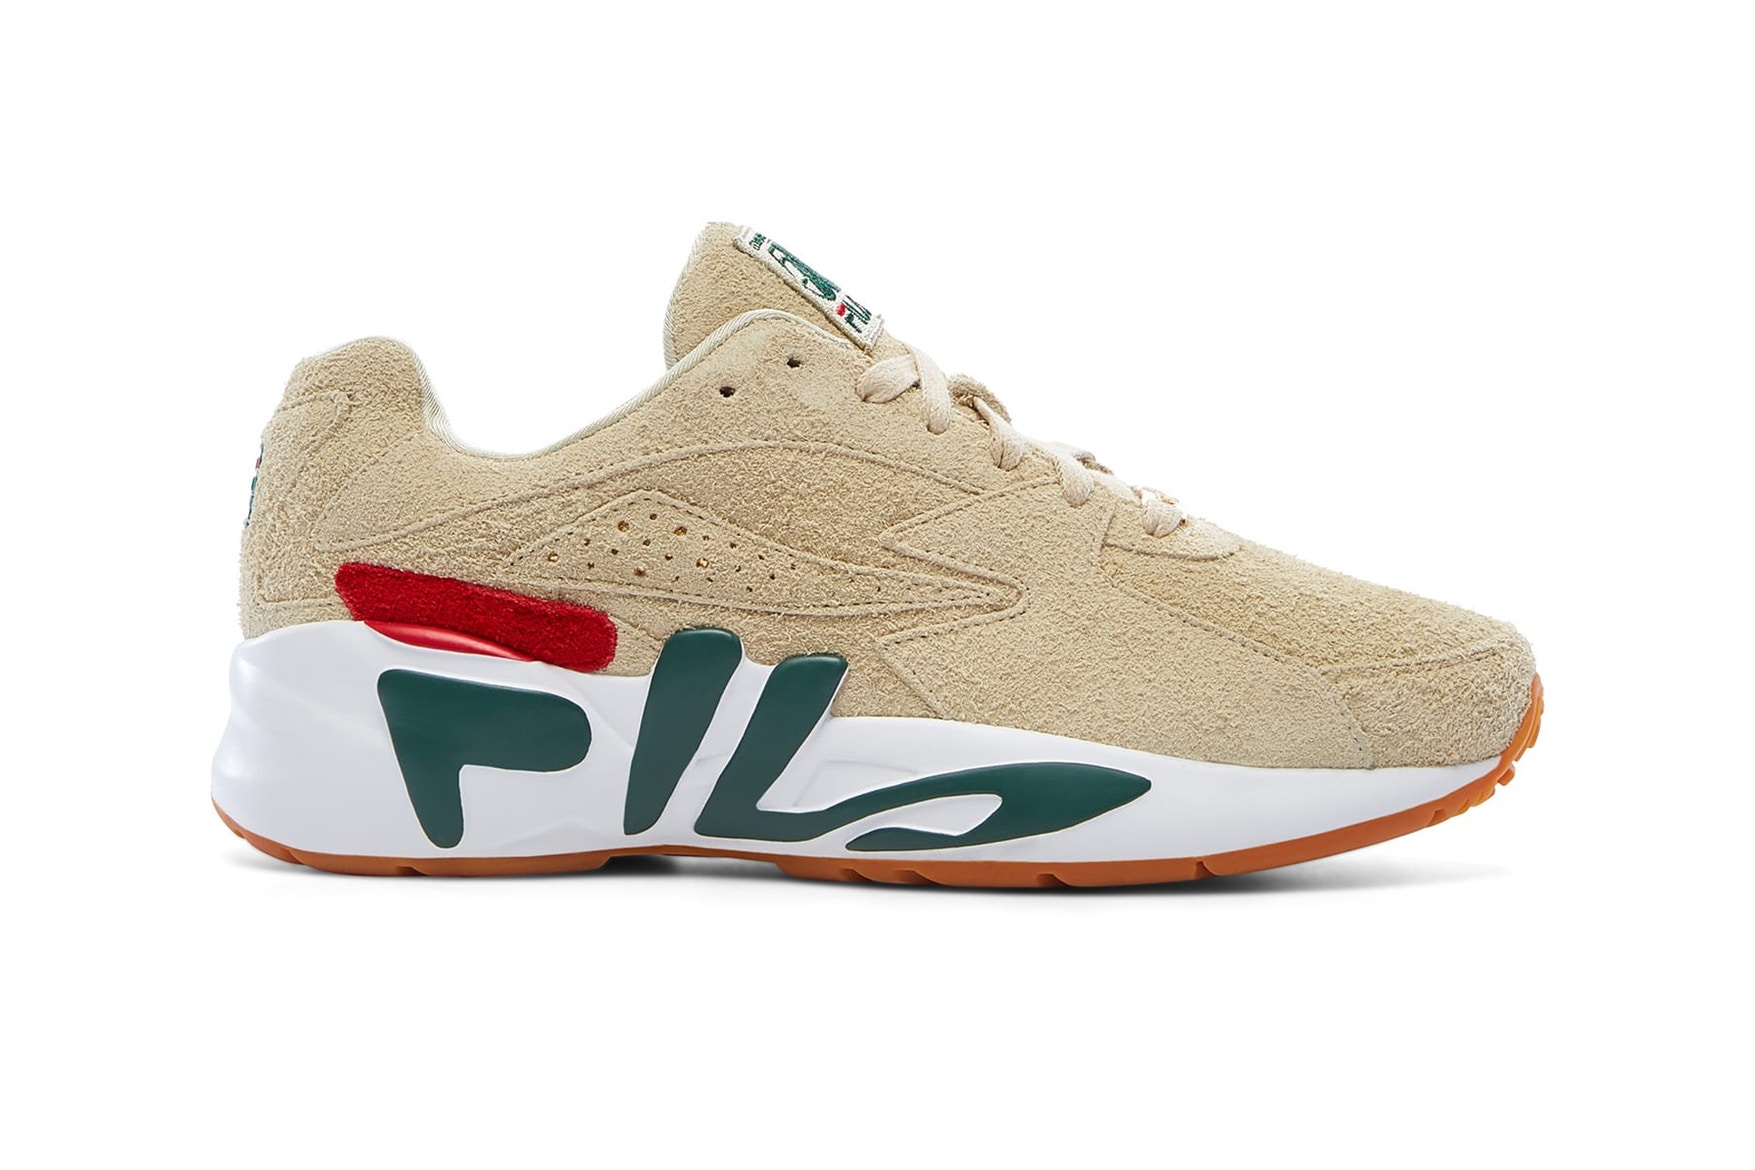 fila shoes quality review nyc doe 2017-2018 schedule